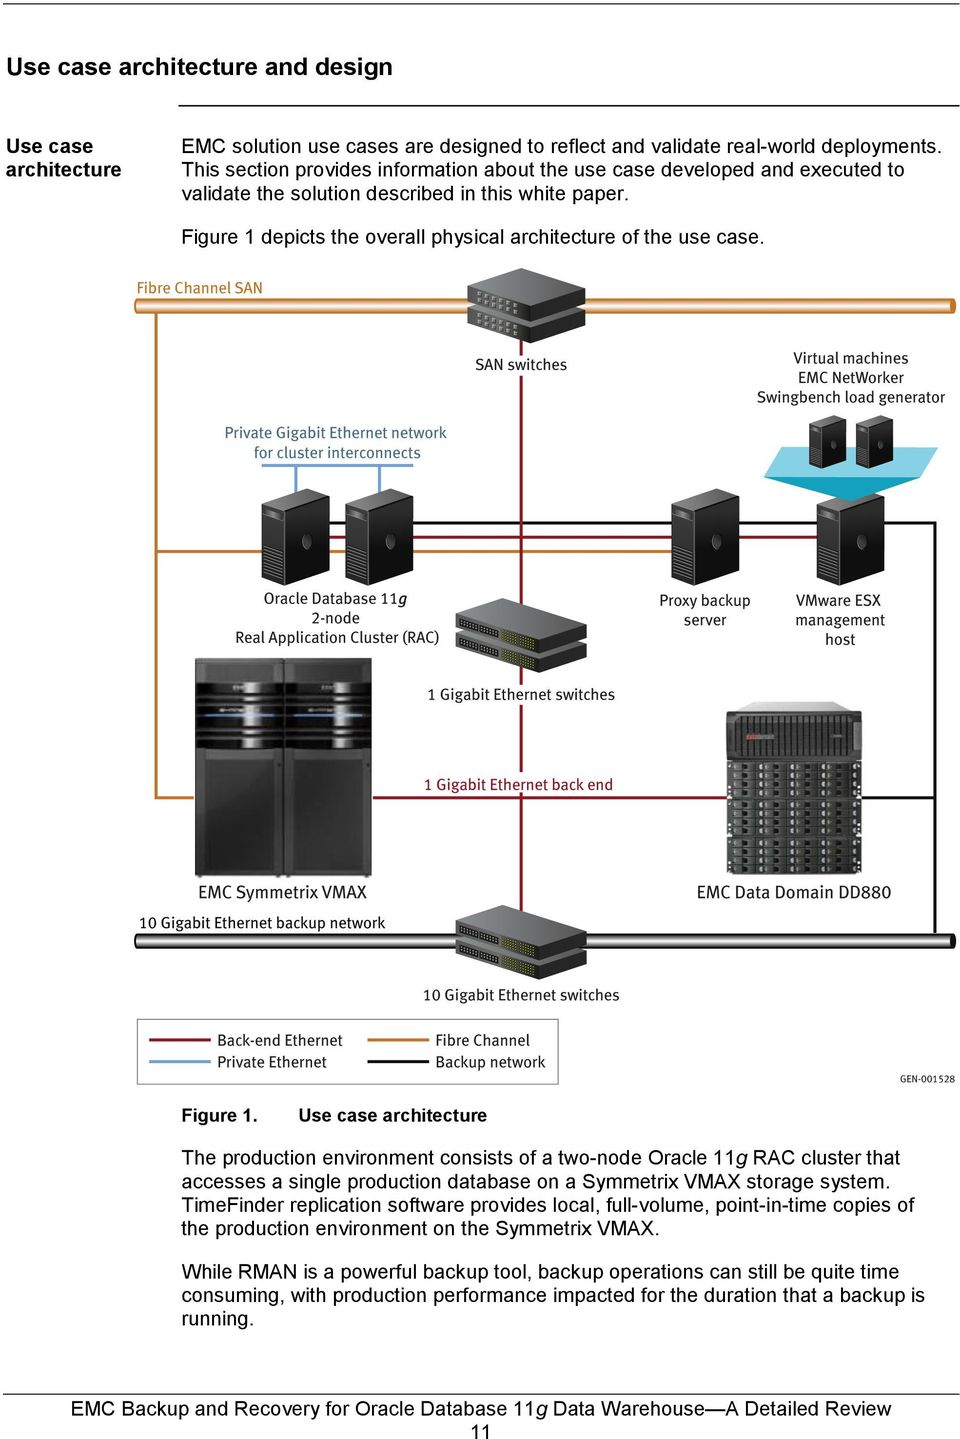 Emc backup and recovery for oracle database 11g data warehouse pdf use case architecture the production environment consists of a two node oracle pooptronica Choice Image